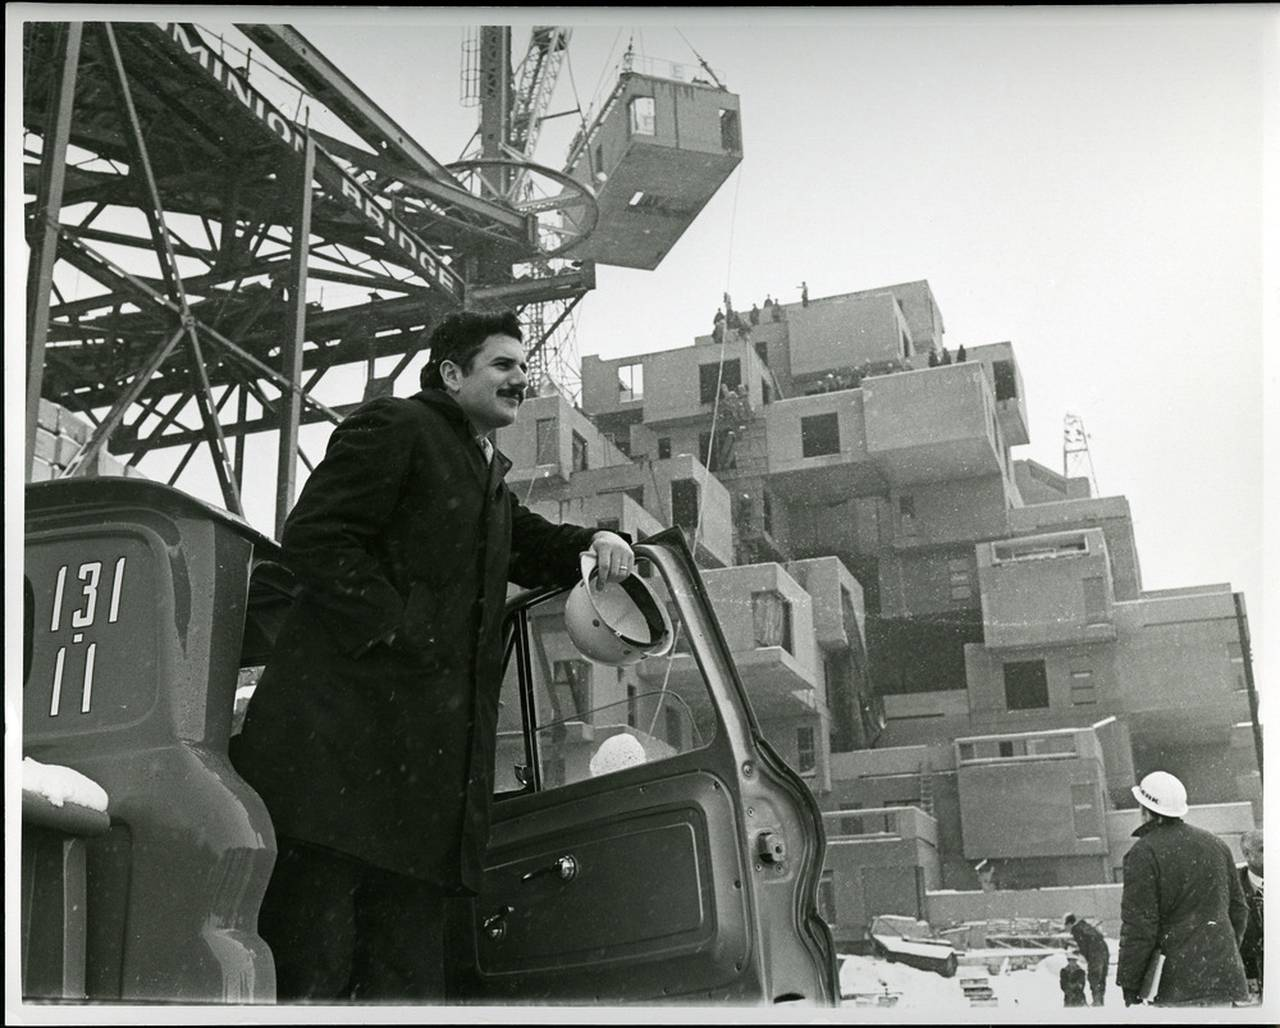 Moshe Safdie at Habitat, 1966 : Photo credit © Collection of Safdie Architects